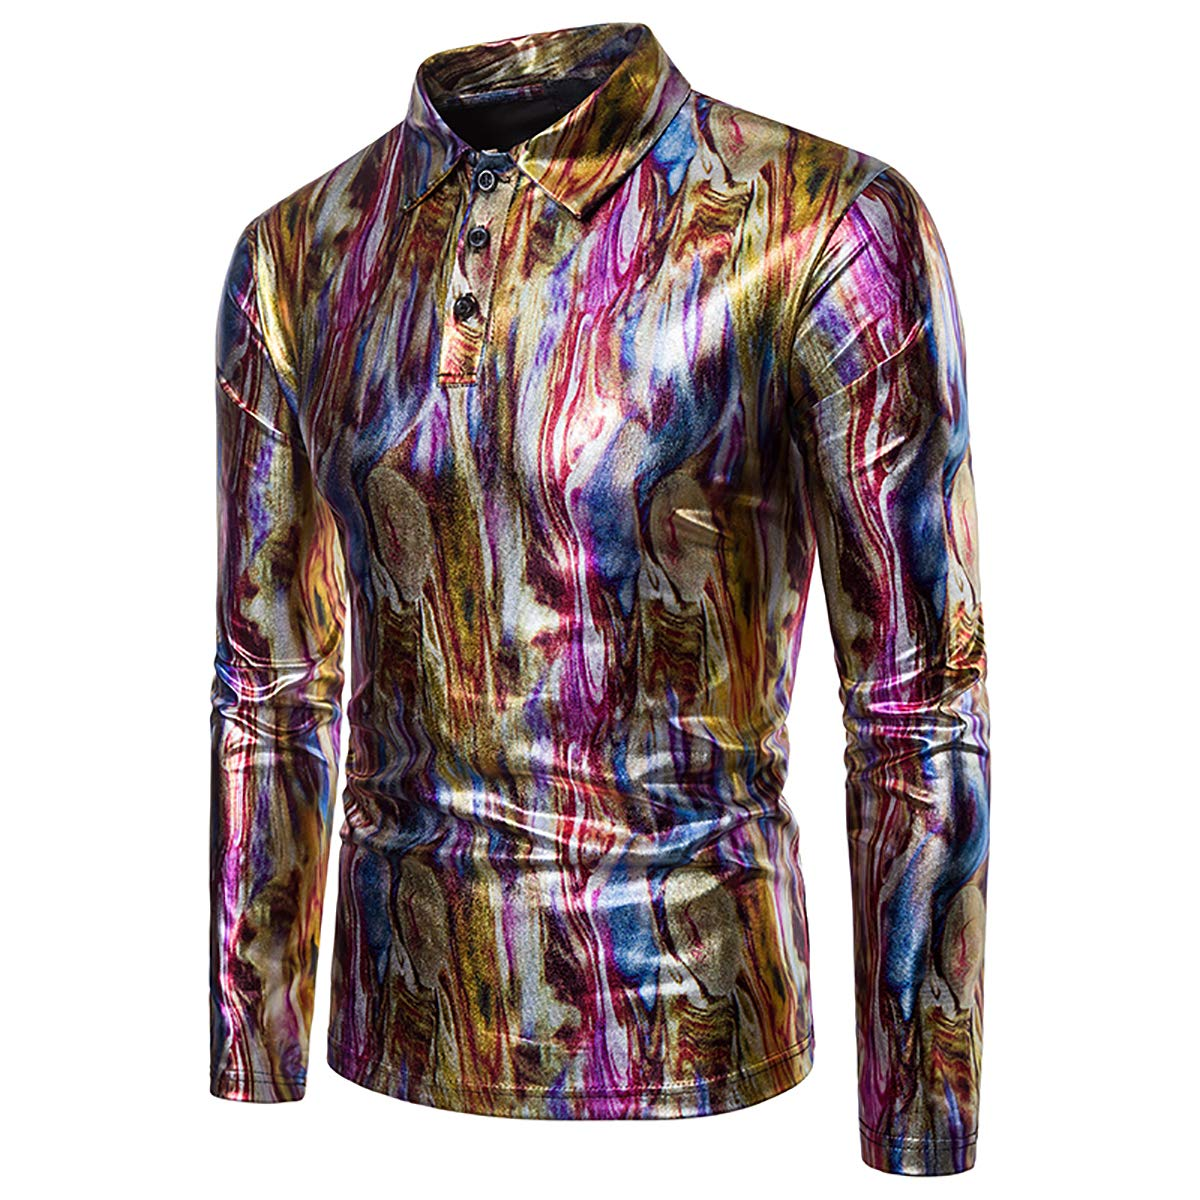 Boyland Mens Polo Shirts Long Sleeves Colorful Metallic Shirt O Neck Strips Shirt Party Nightclub